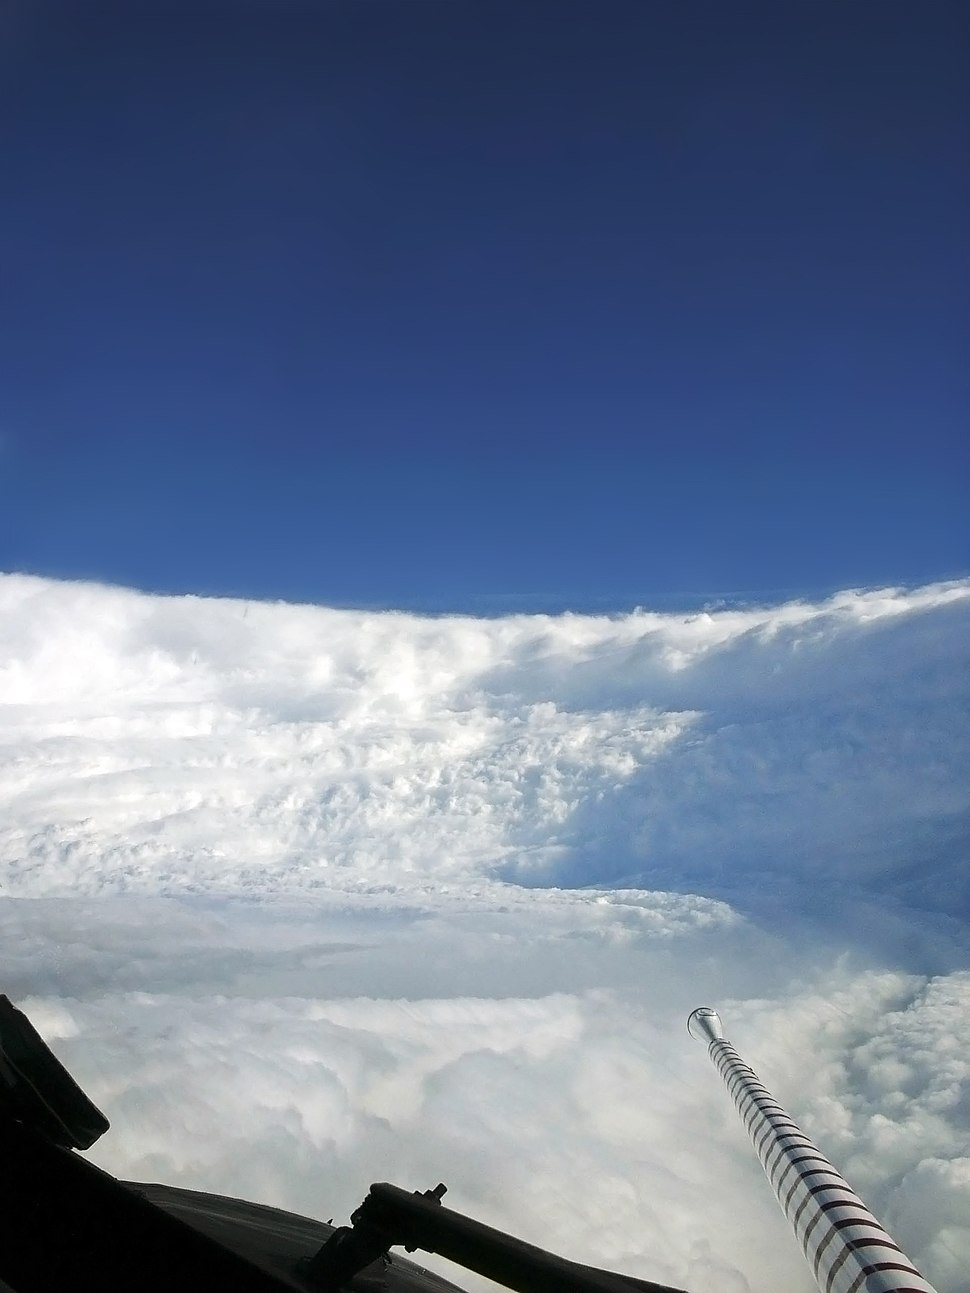 Hurricane Katrina Eye viewed from Hurricane Hunter